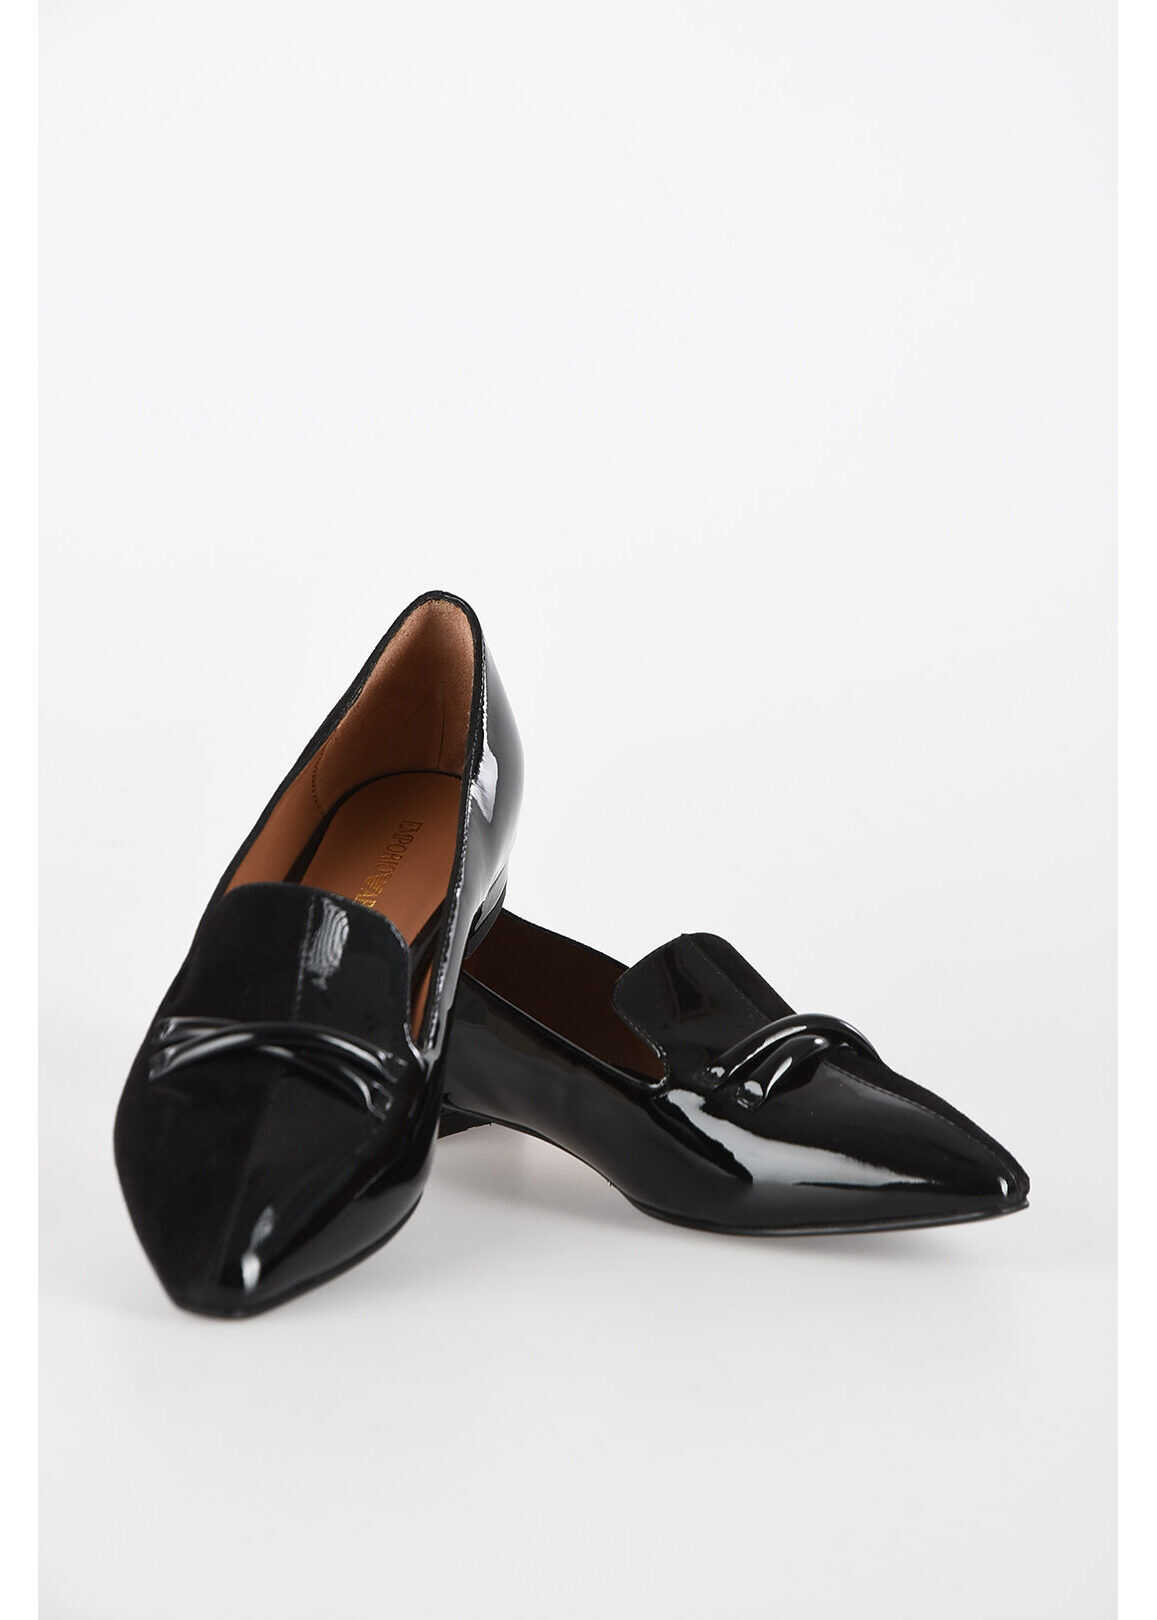 Armani EMPORIO Leather Loafer BLACK